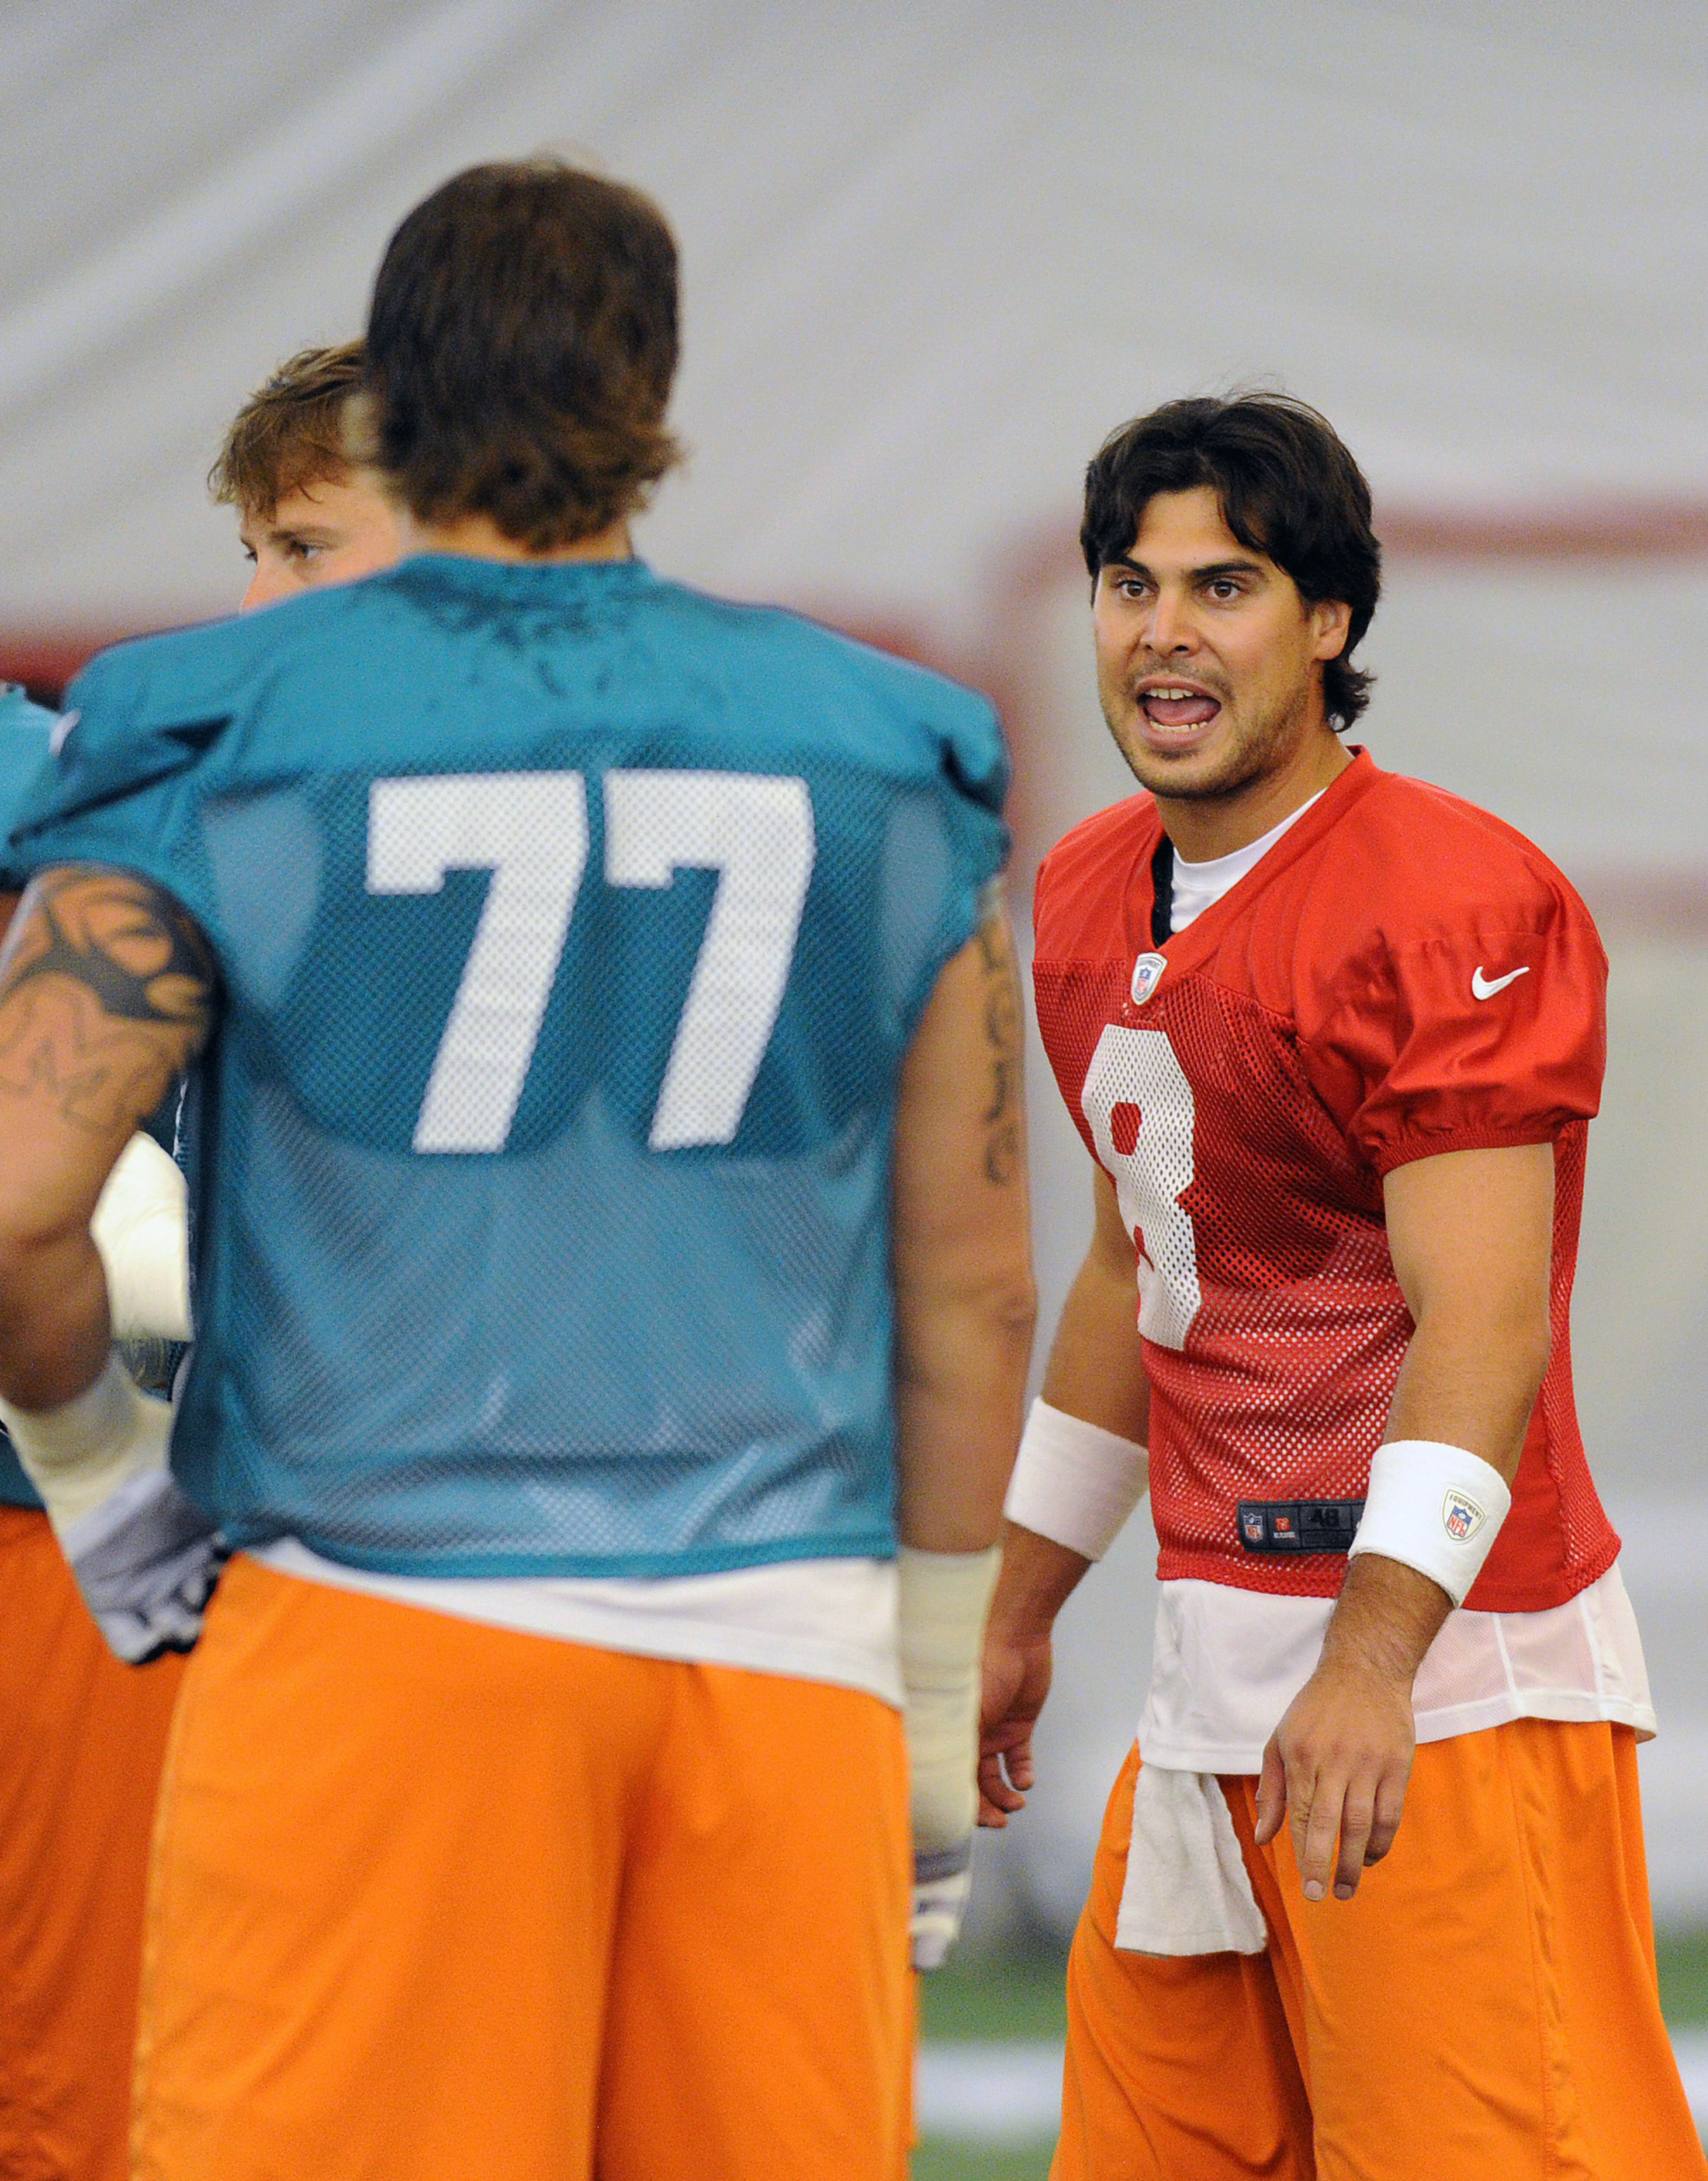 July 27 2012; Davie, FL, USA; Miami Dolphins quarterback Matt Moore (8) during practice at the Dolphins training facility. Mandatory Credit: Steve Mitchell-US PRESSWIRE